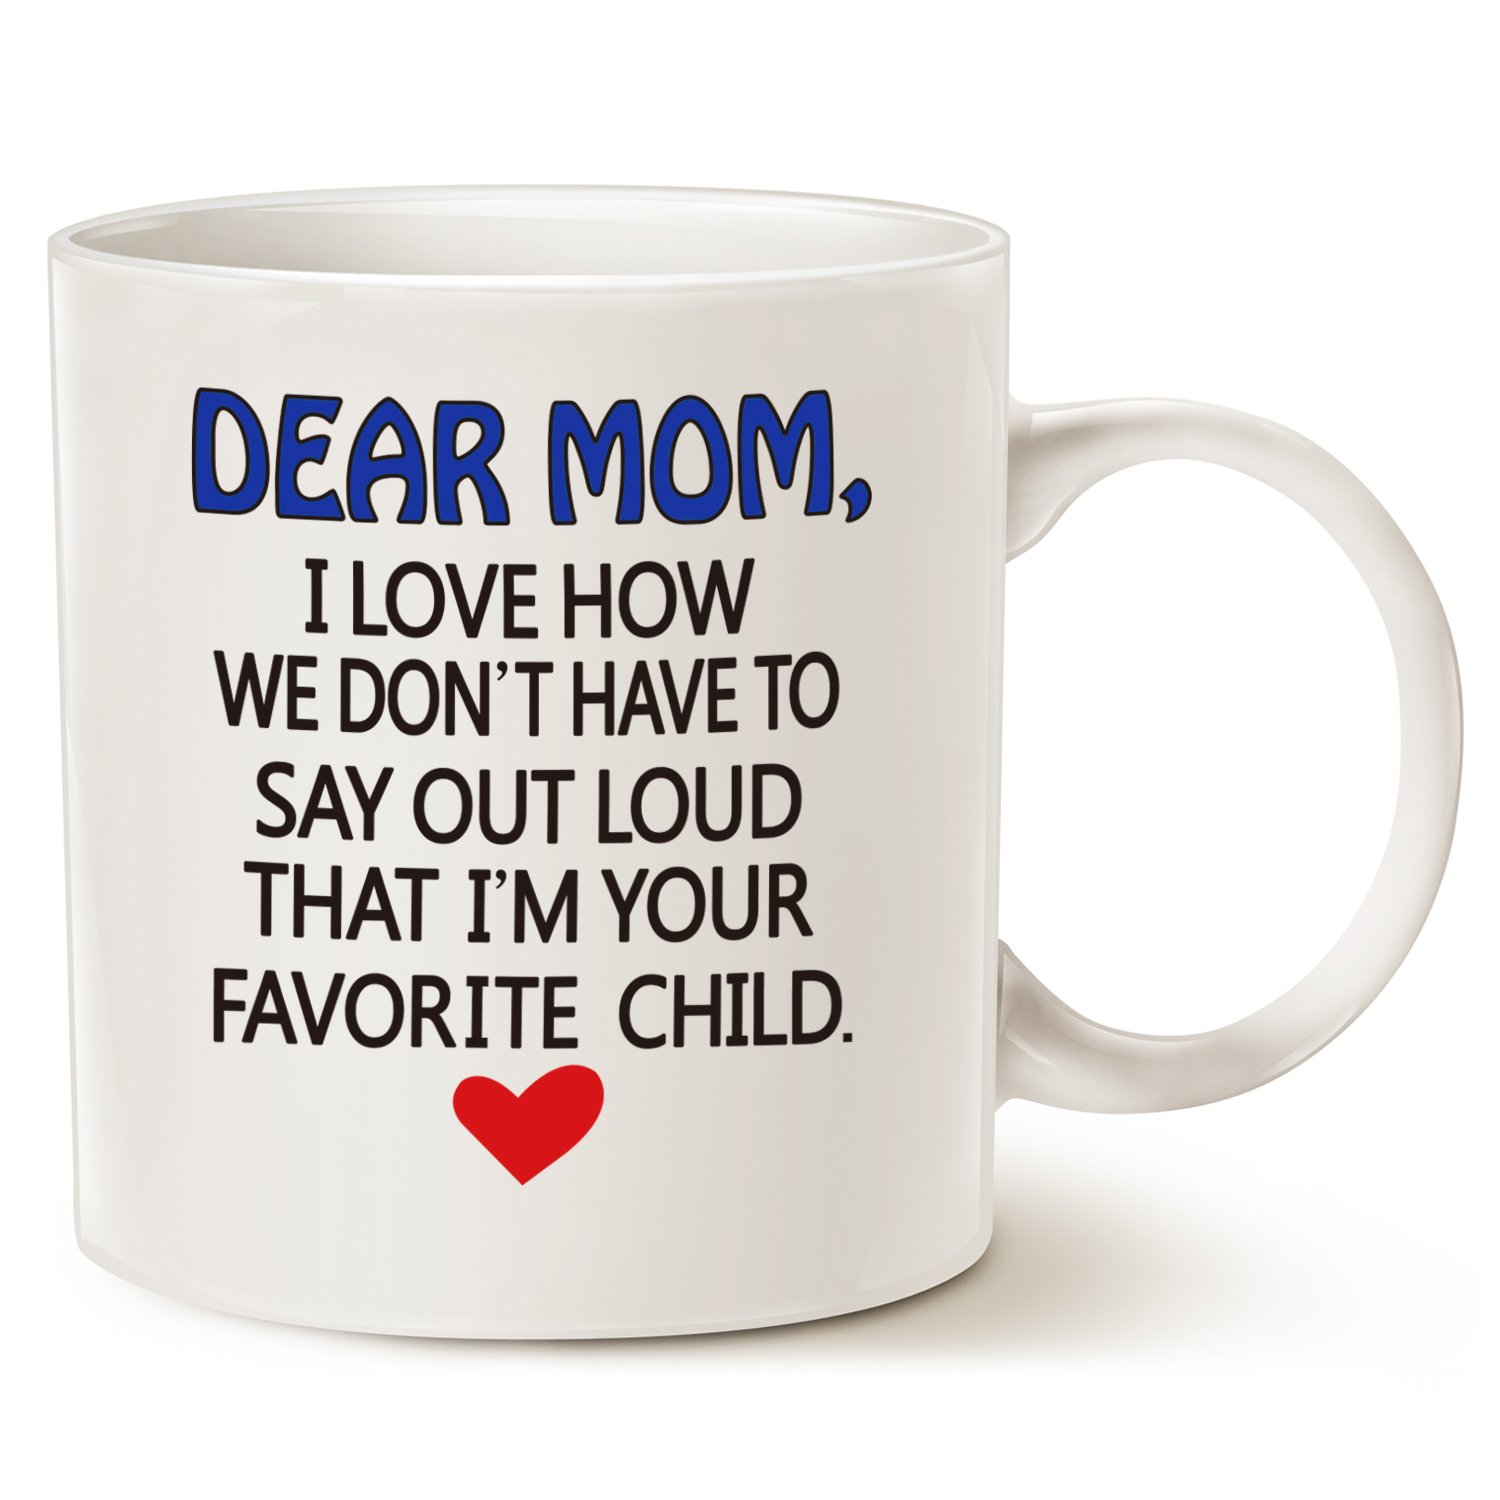 Funny Mother's Day Gifts Coffee Mug for Mom - Dear Mom, I'm Your Favorite Child Coffee Mug, Best Birthday Gift for Mom, Mother, Grandma Porcelain Cup, White 14 Oz by LaTazas